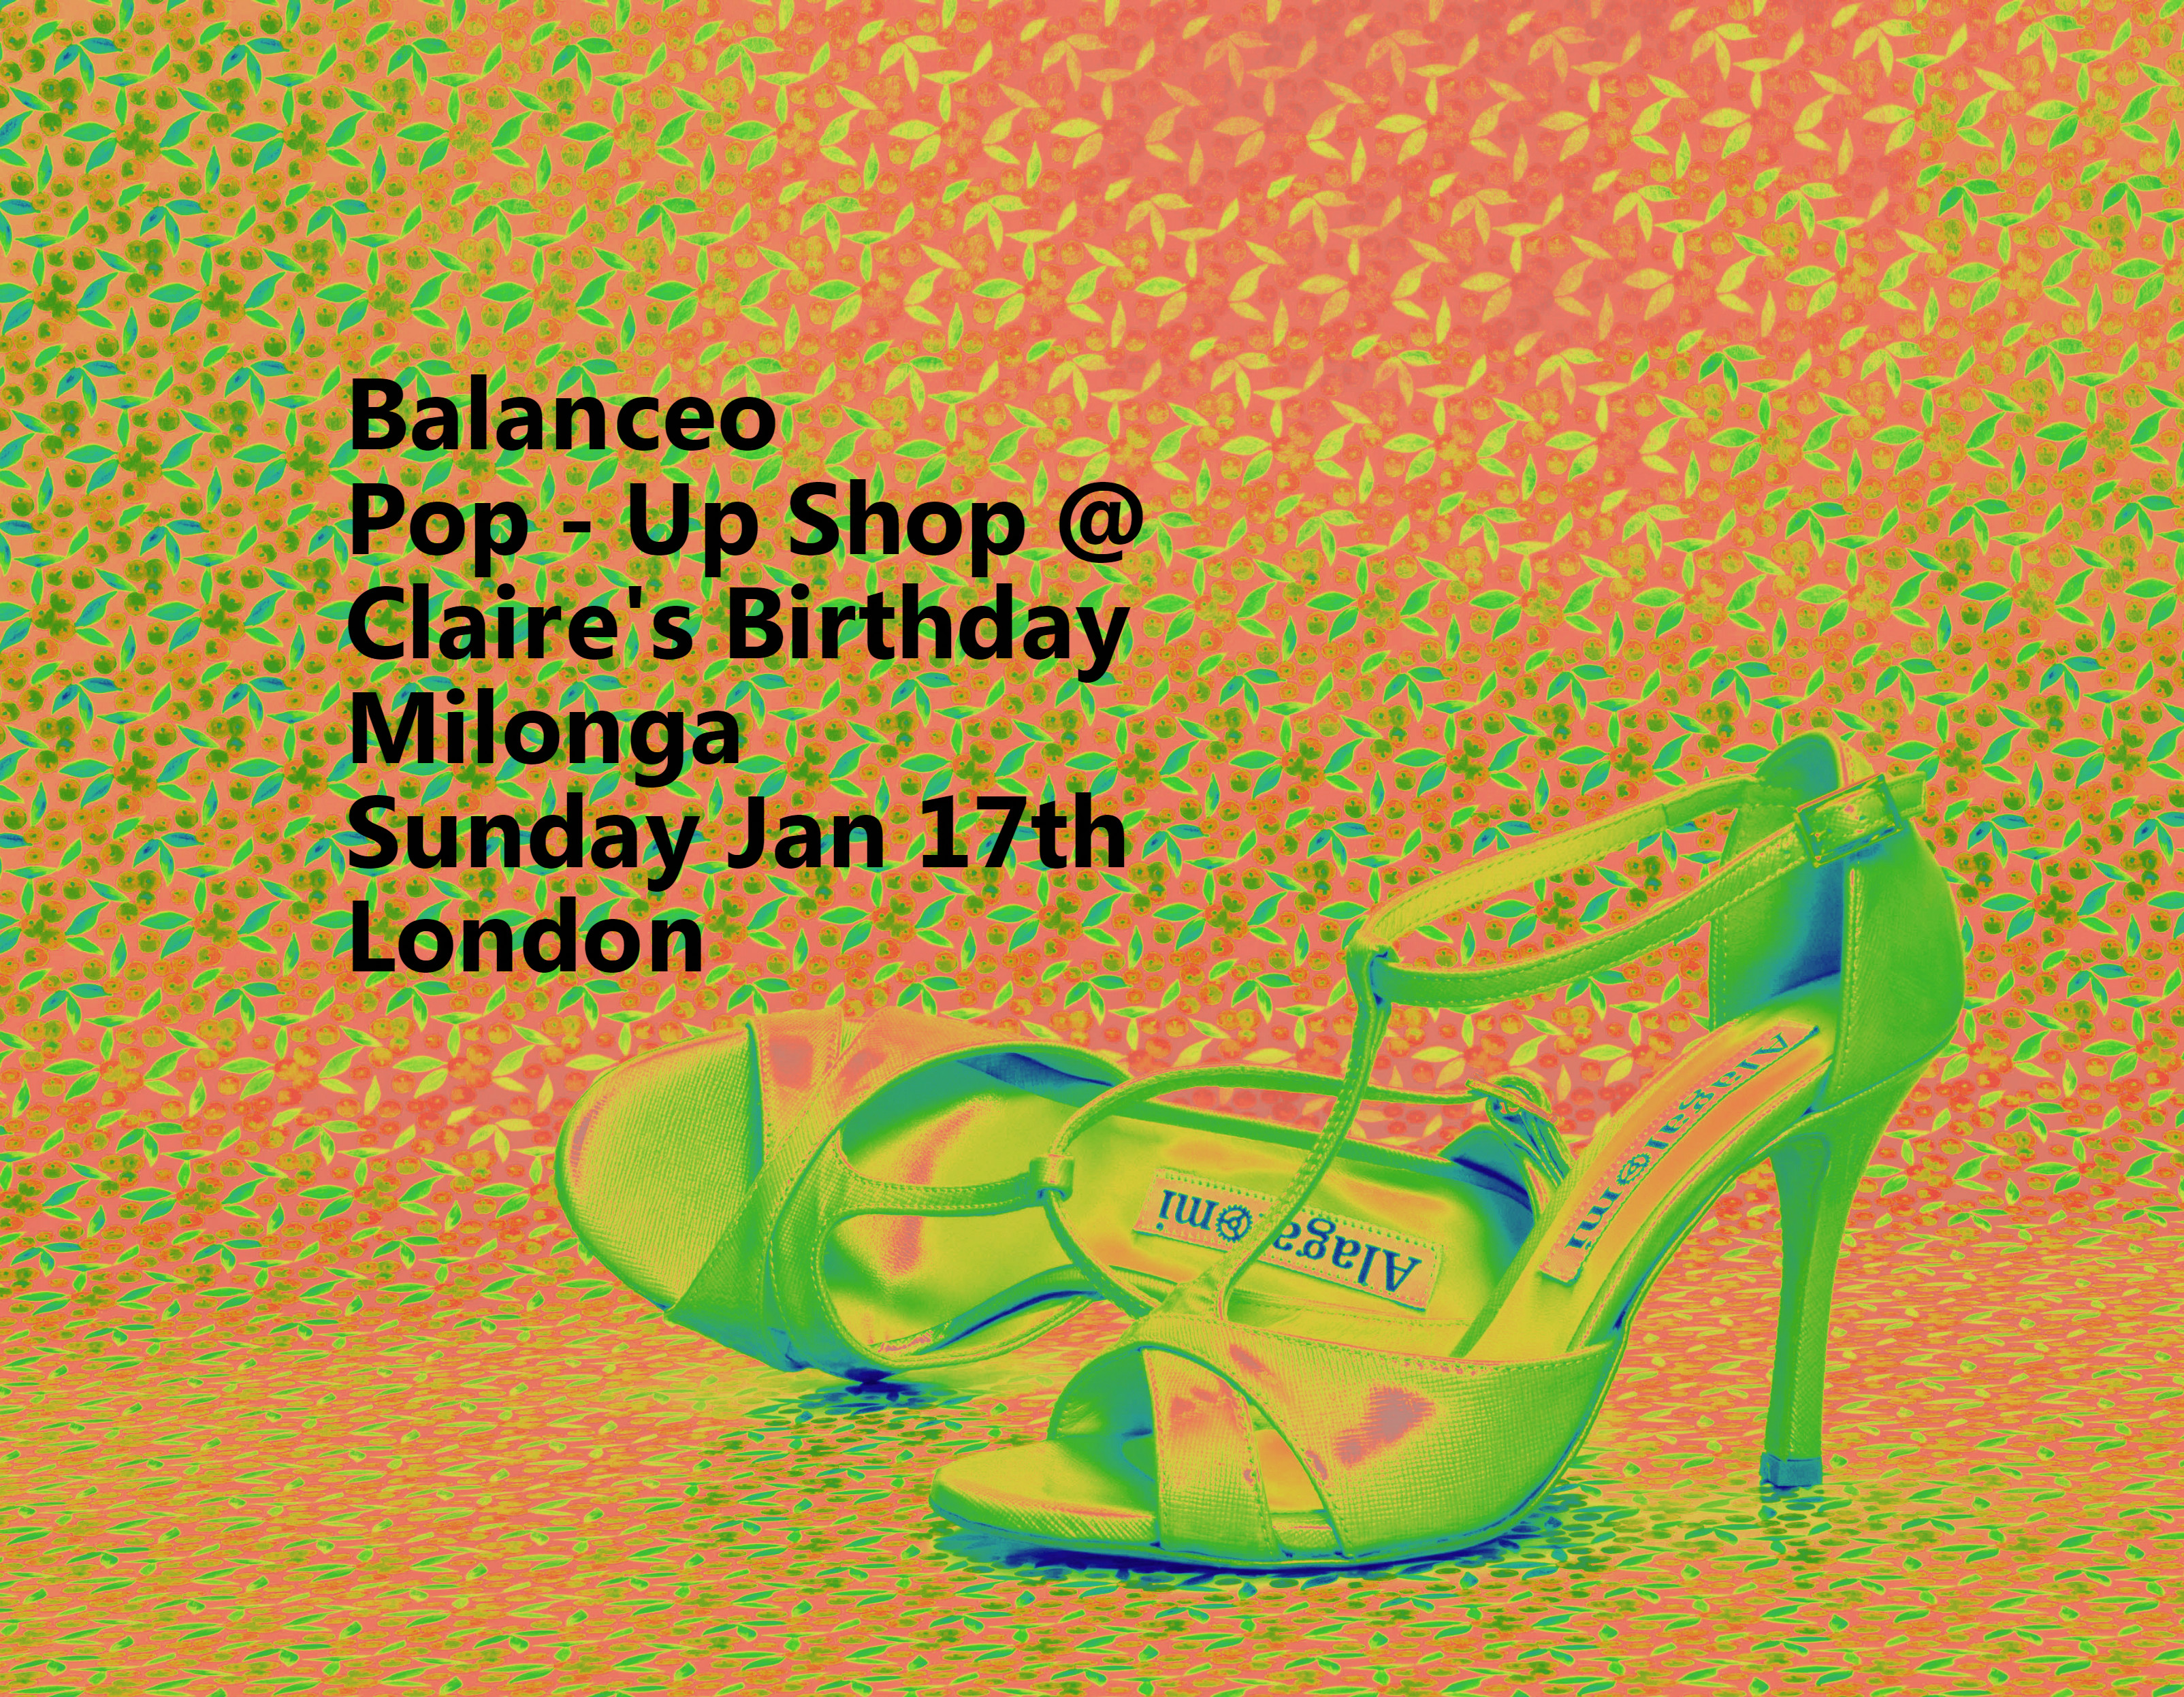 Balanceo Pop – Up Shop @Claire's Birthday Milonga London